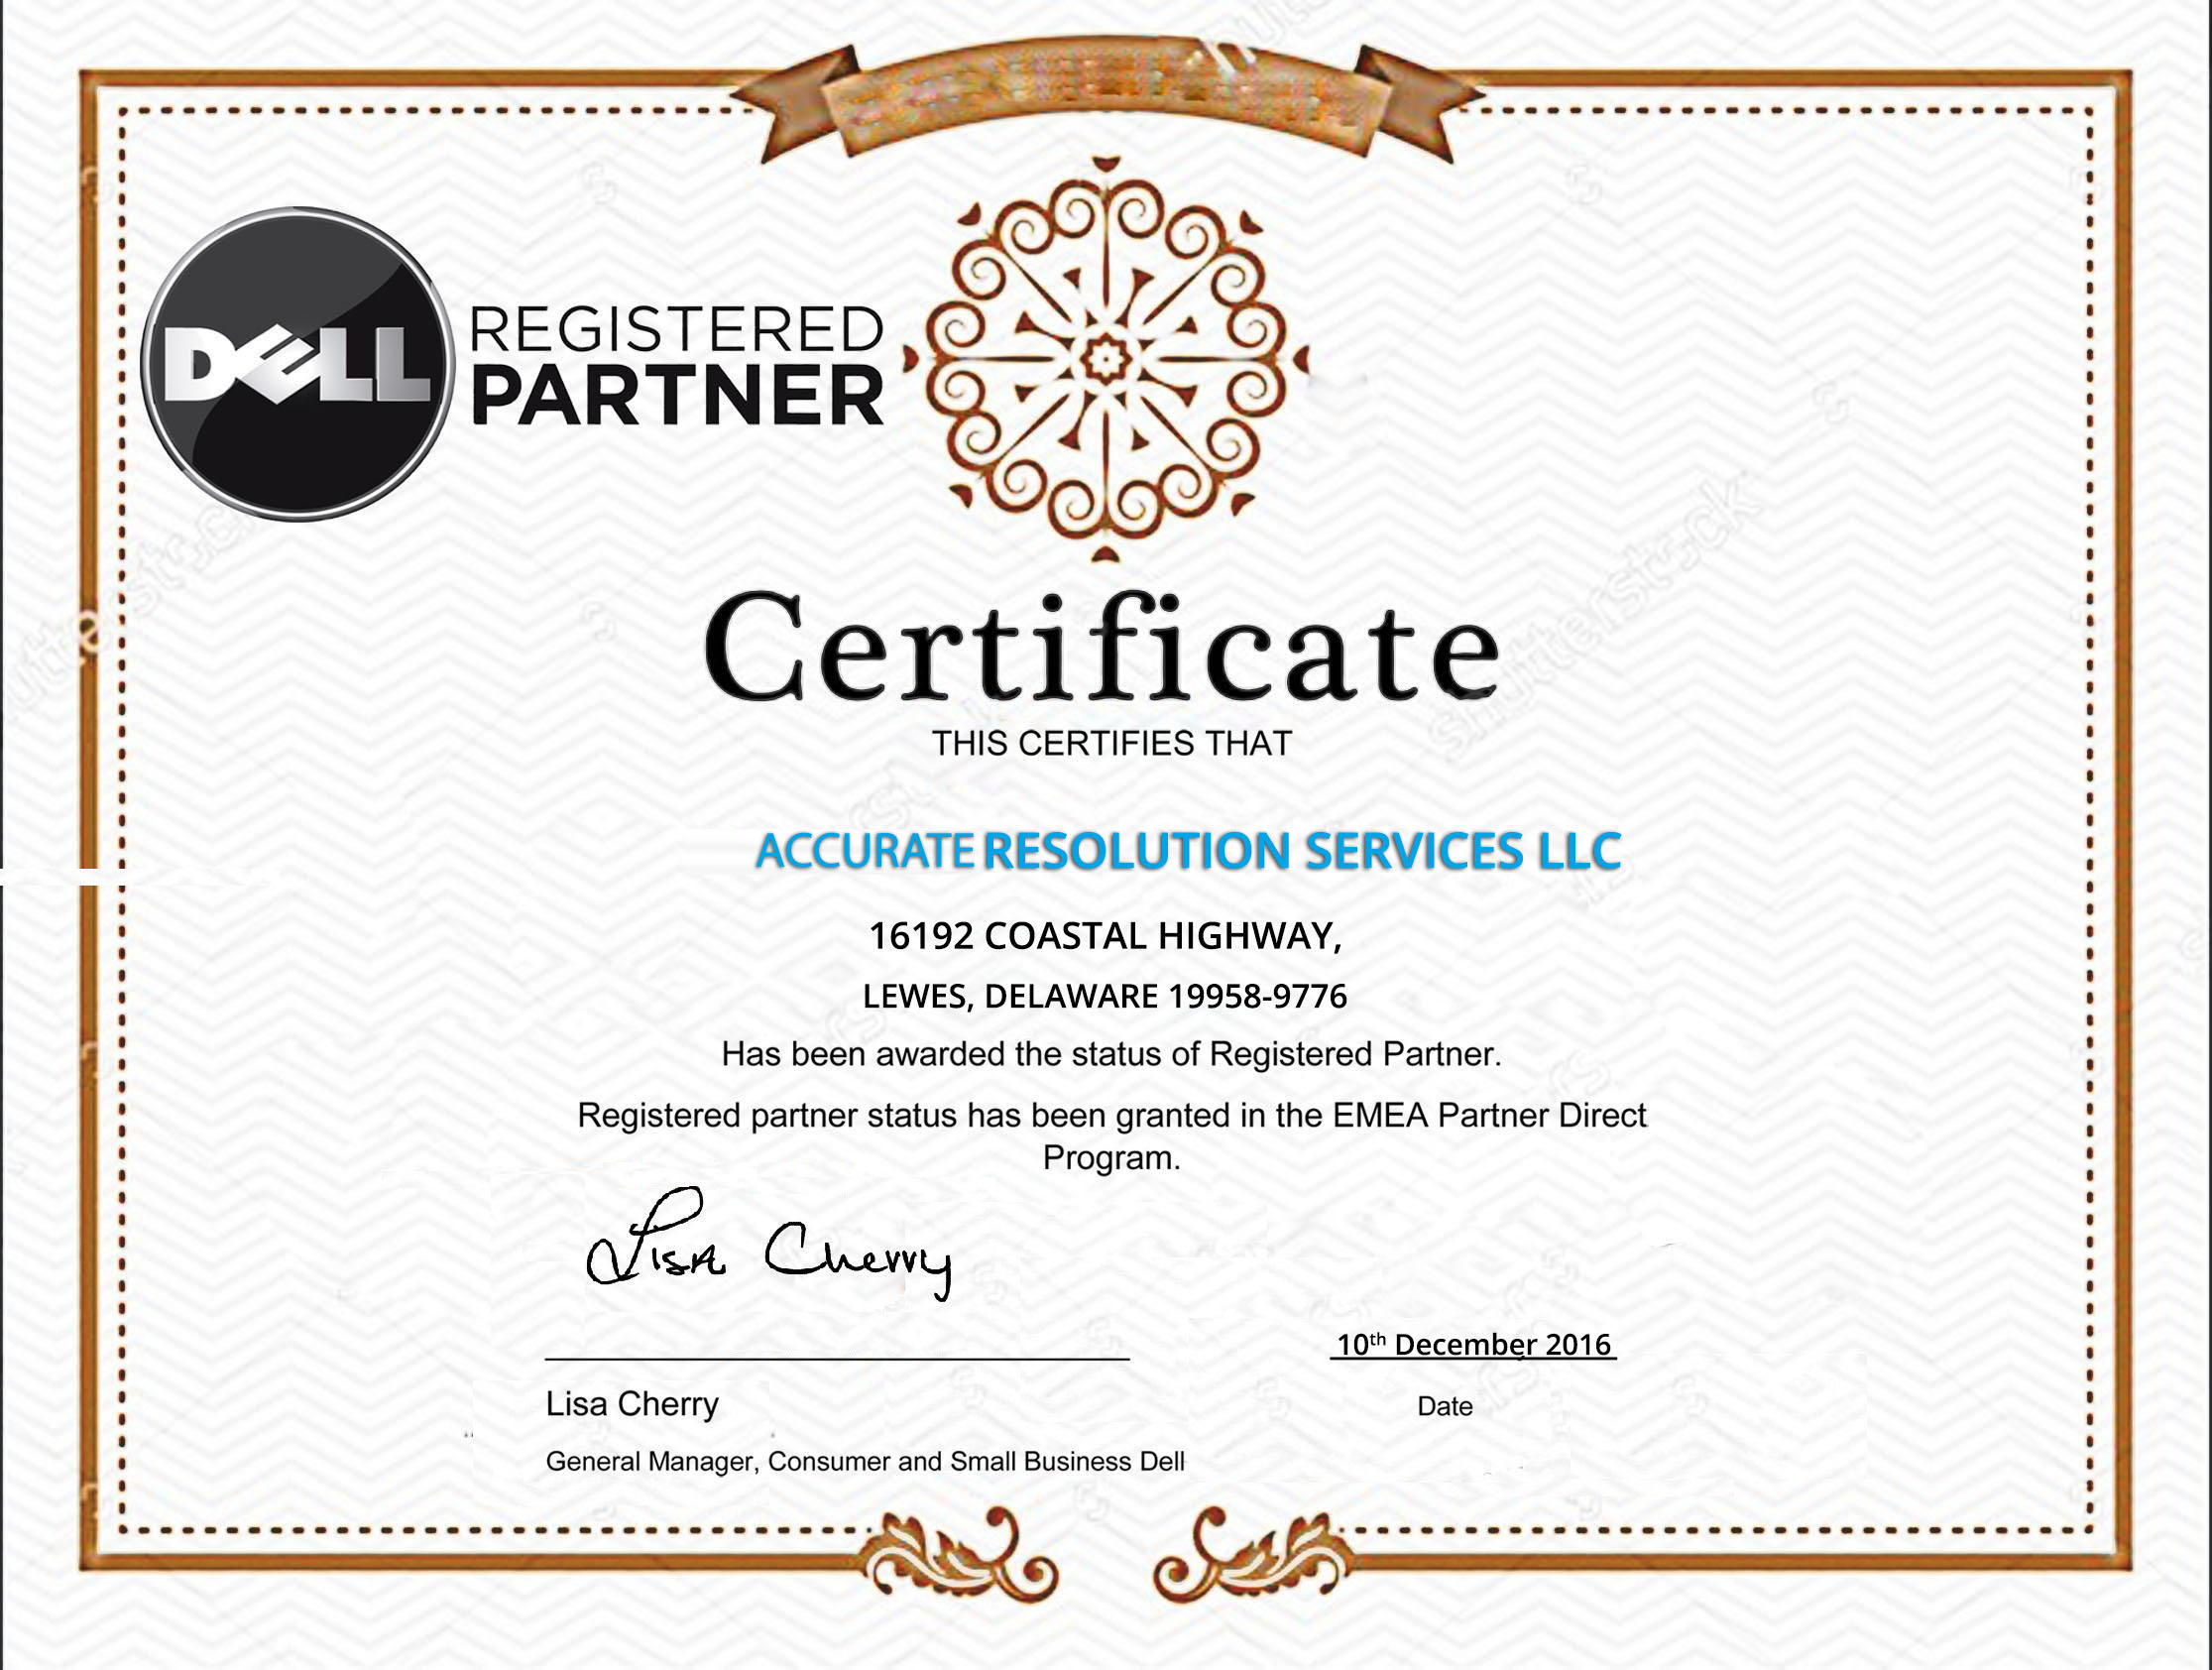 Accurate Resolution Services